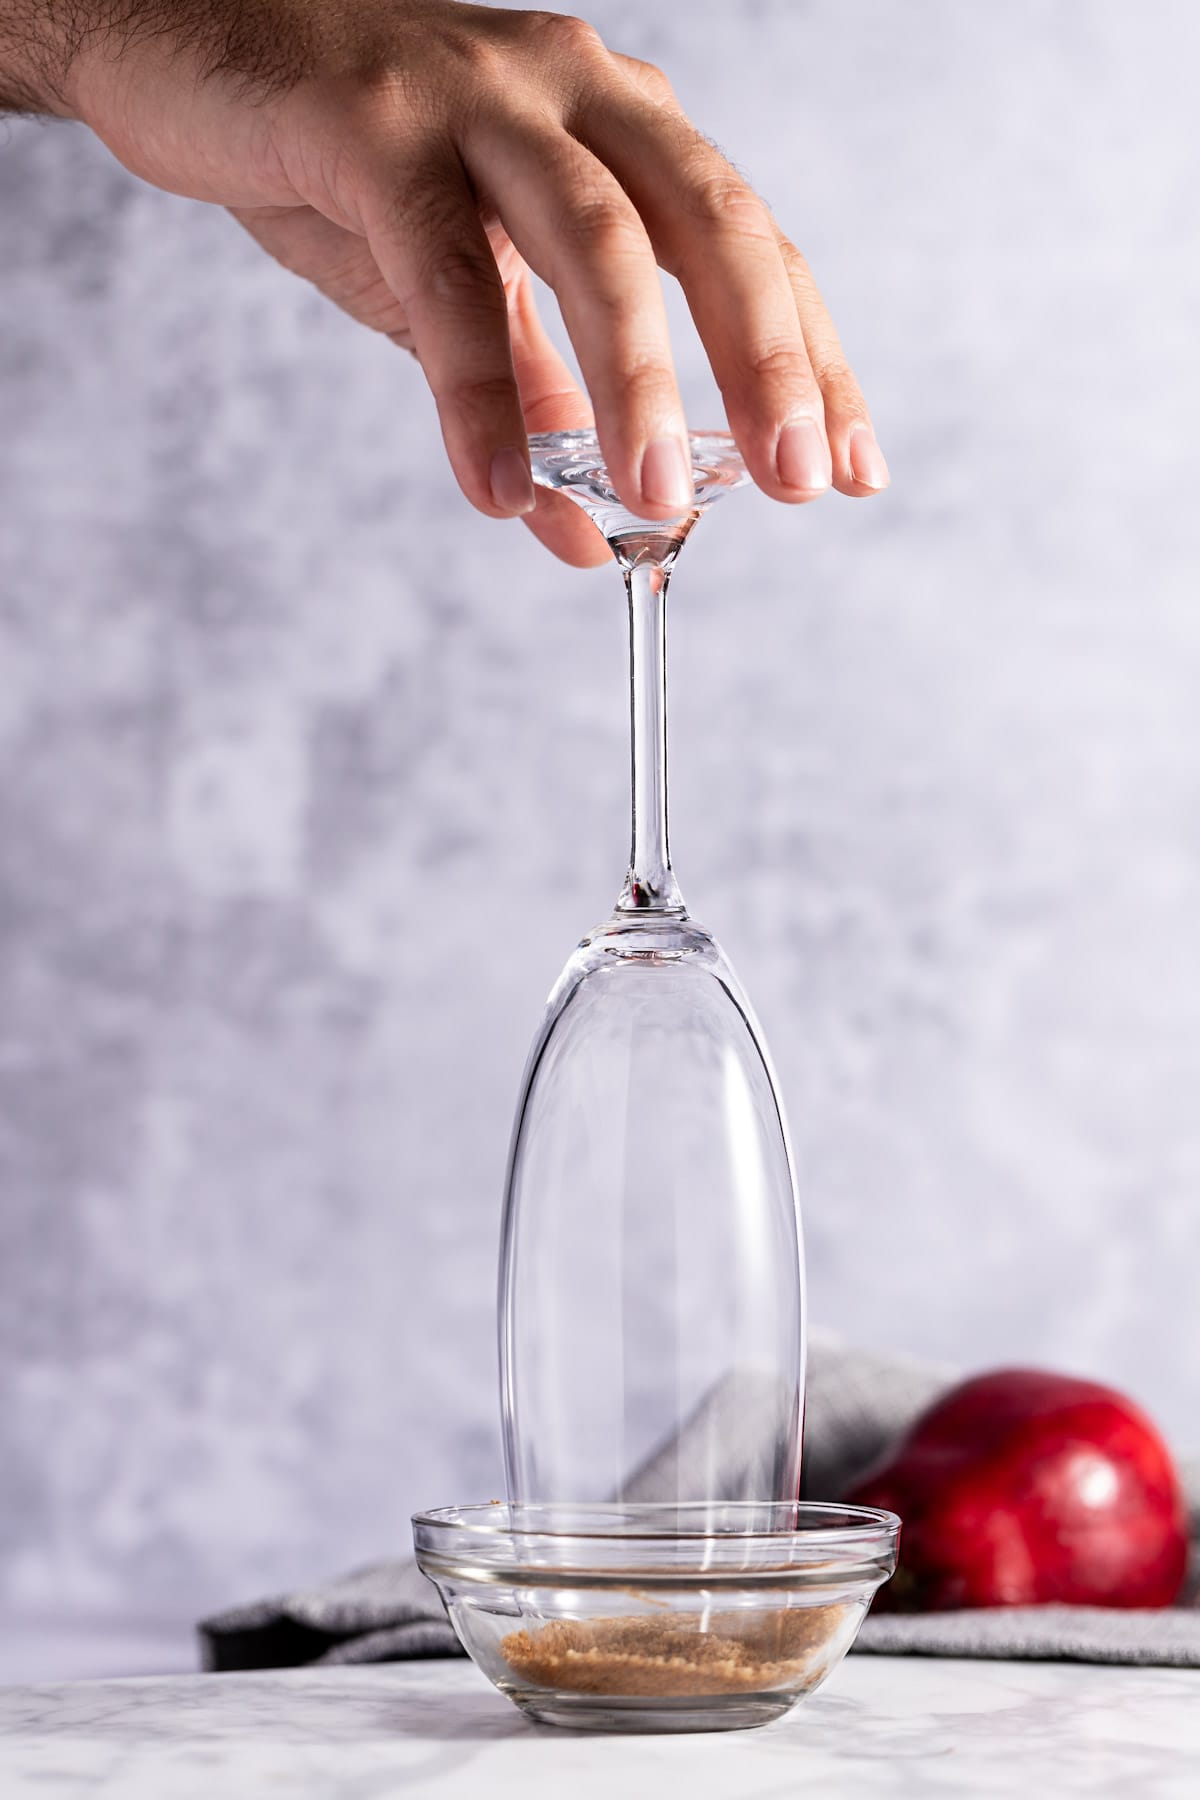 Hand holding a champagne flute and dipping it into a brown sugar and cinnamon mixture to line the rim of the glass.